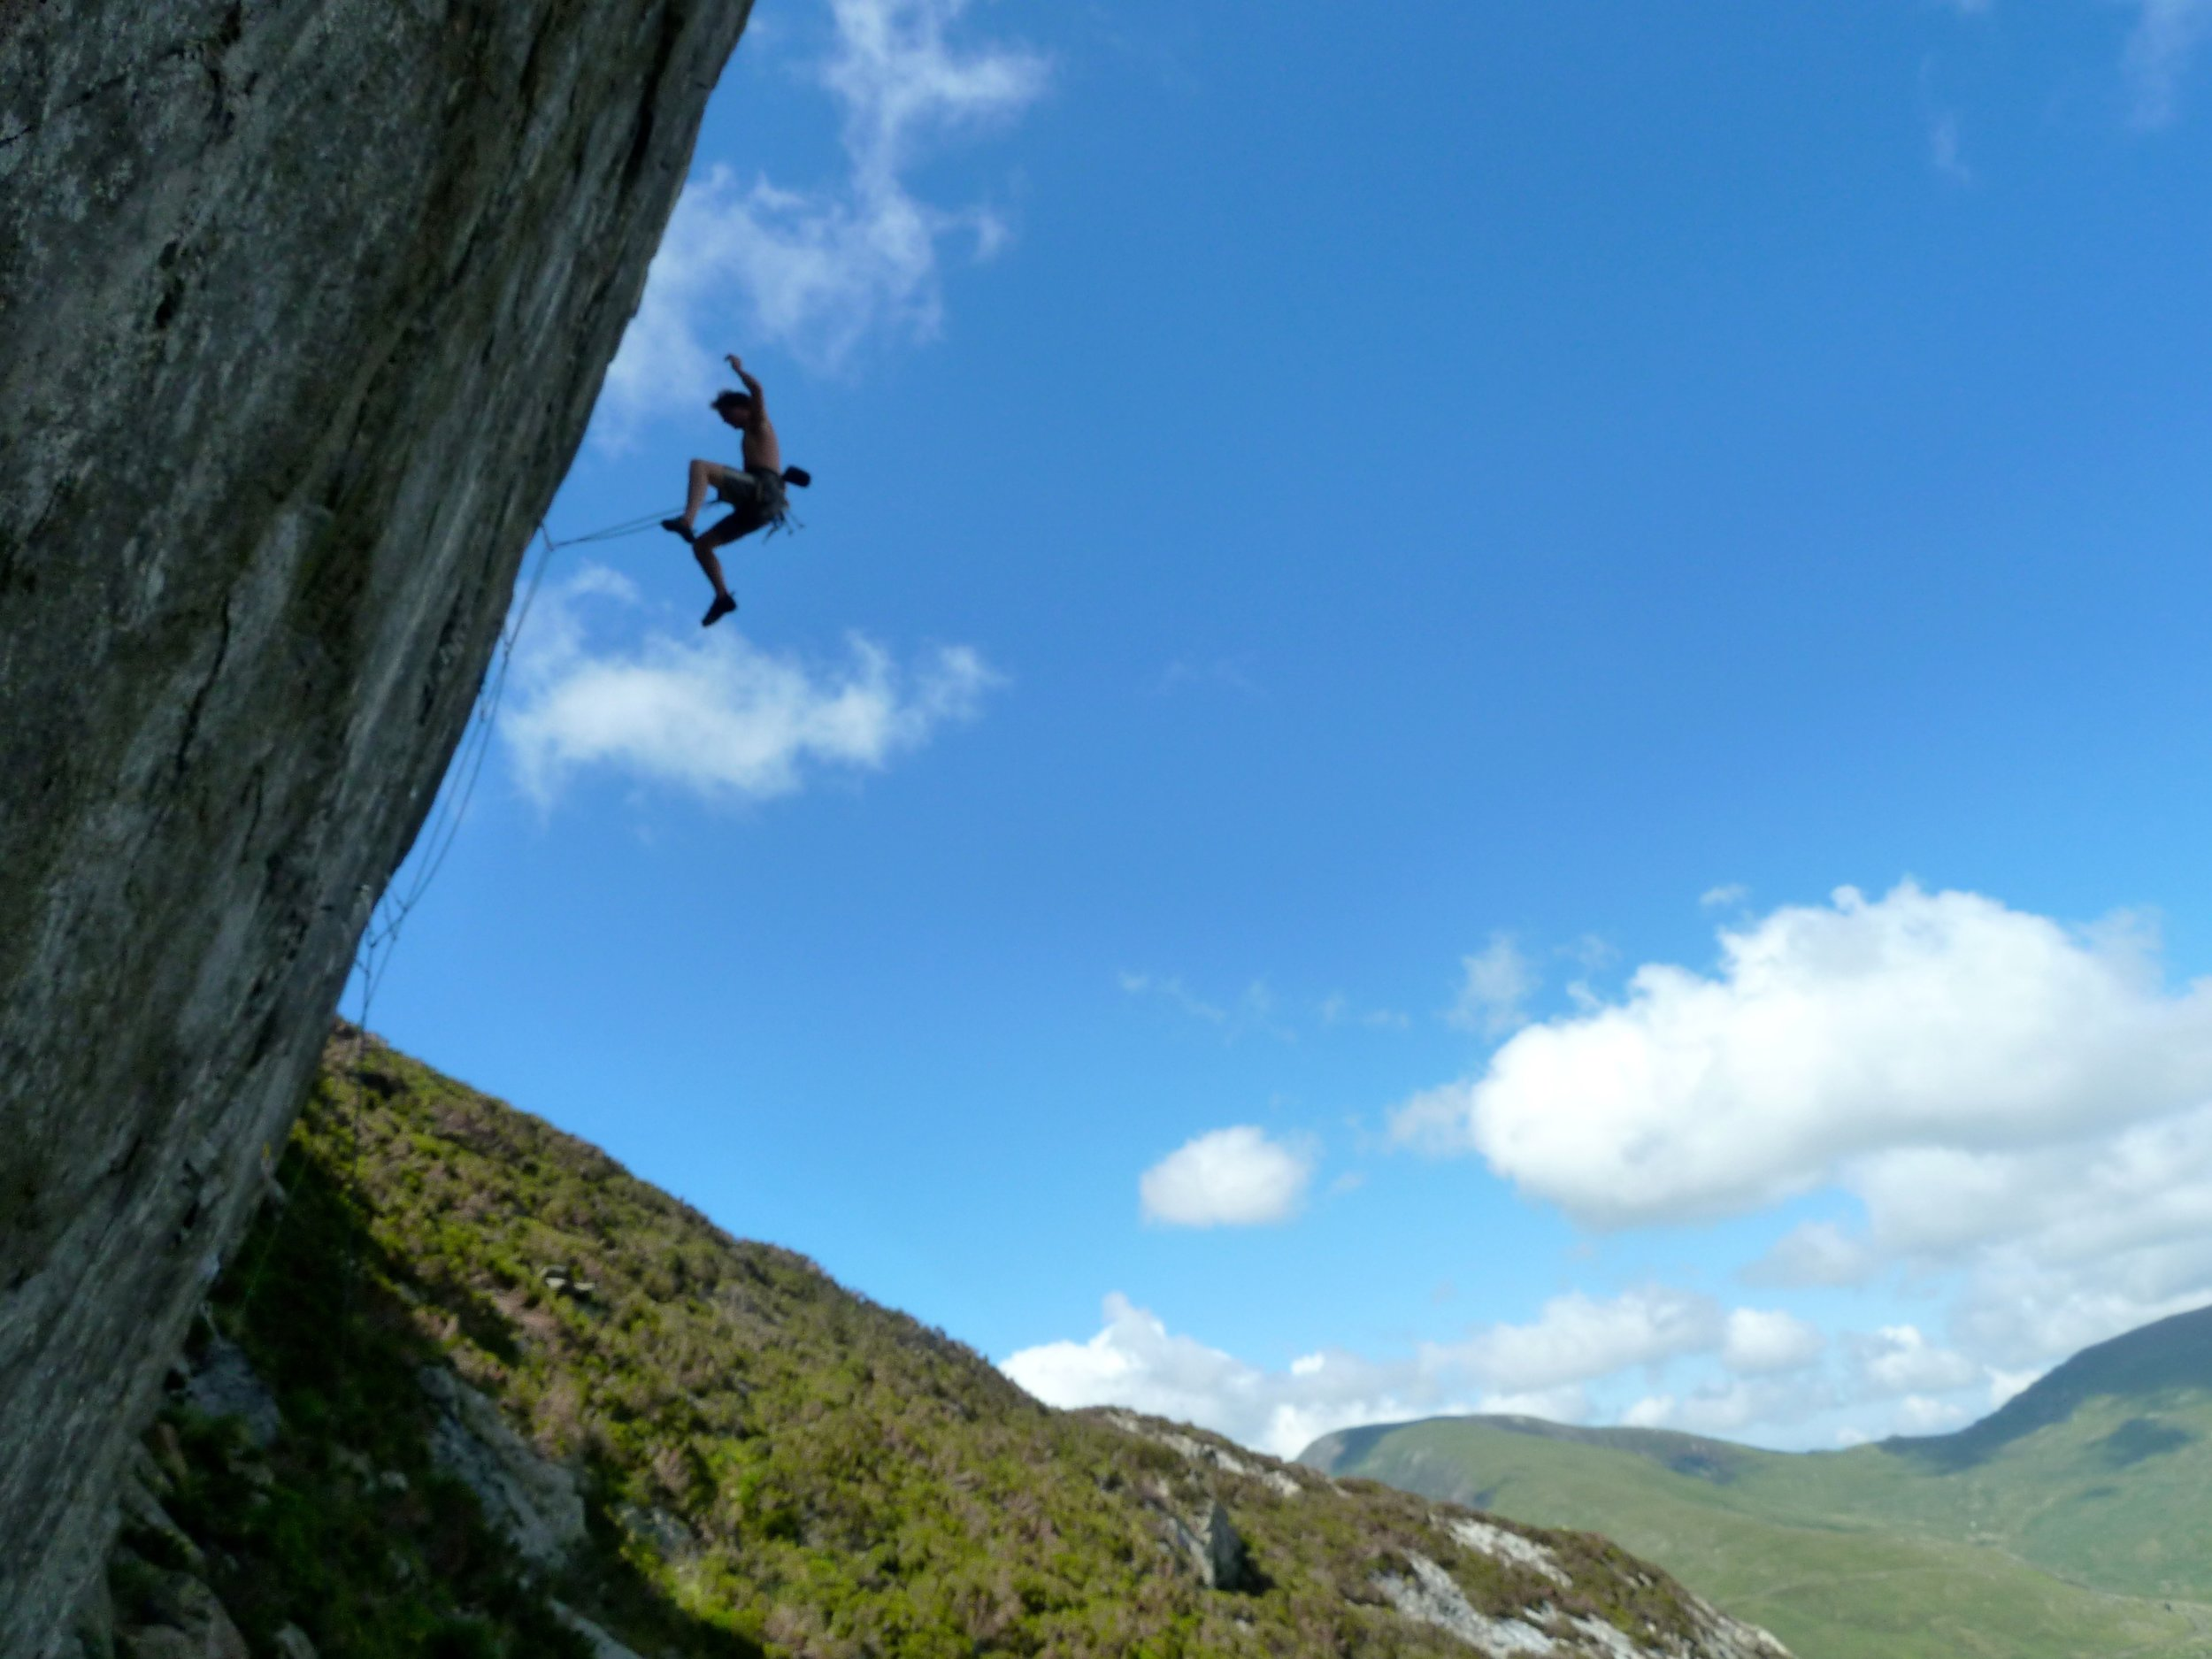 Jack Lawledge takes flight from Heart of Stone (E7 6c), Ogwen Valley. Photo: Anna Gilyeat